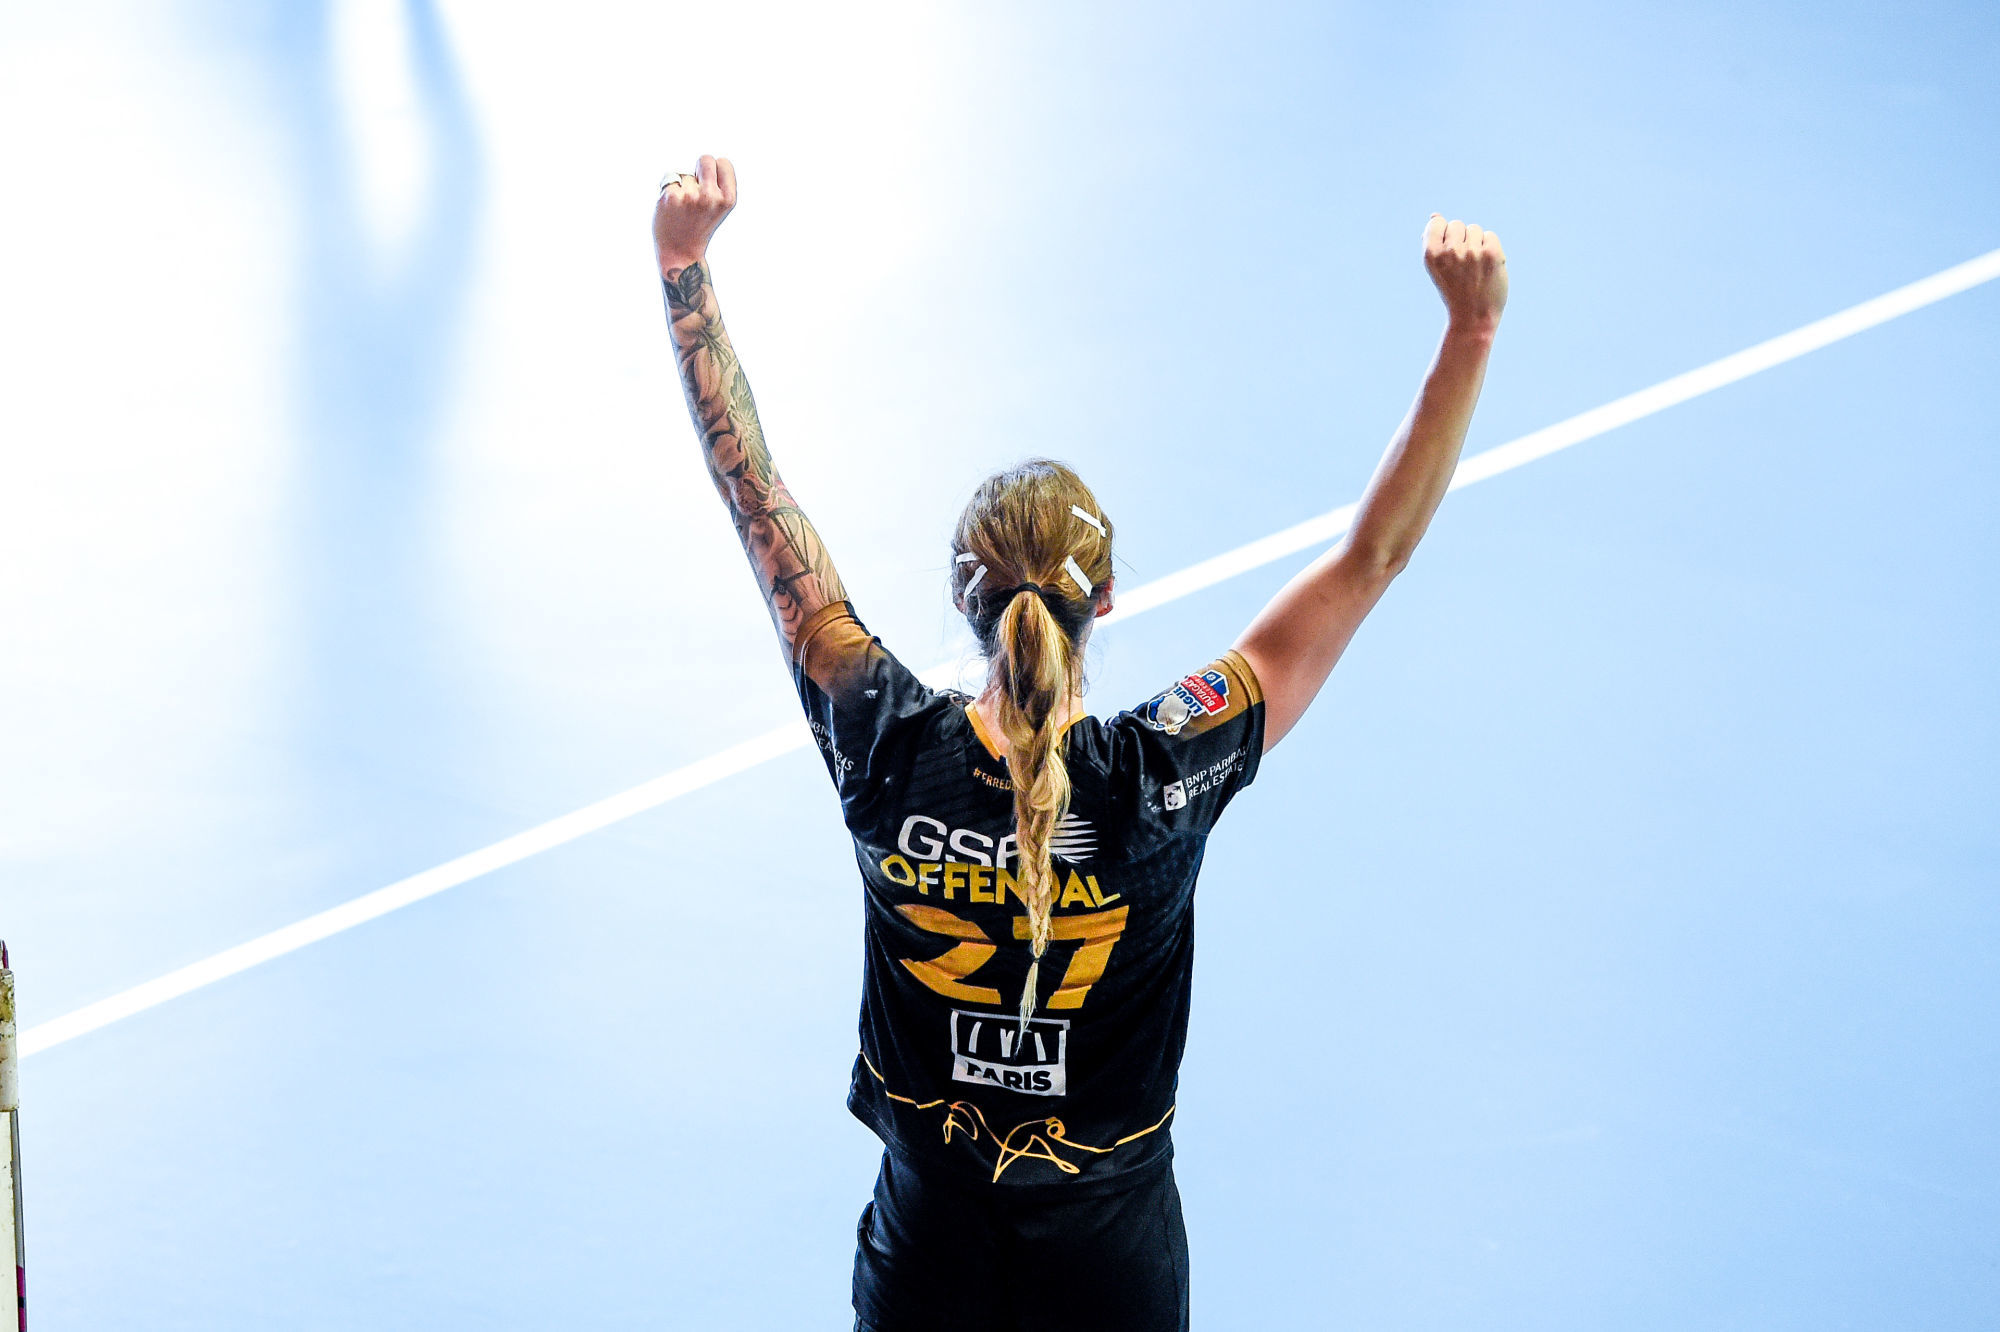 Nadia OFFENDAL of Paris 92 celebrates during the Ligue Butagaz Energie match between Chambray and Paris 92 on May 8, 2021 in Chambray-les-Tours, France. (Photo by Hugo Pfeiffer/Icon Sport) - Nadia OFFENDAL - Gymnase de la Fontaine Blanche - Chambray-les-Tours (France)